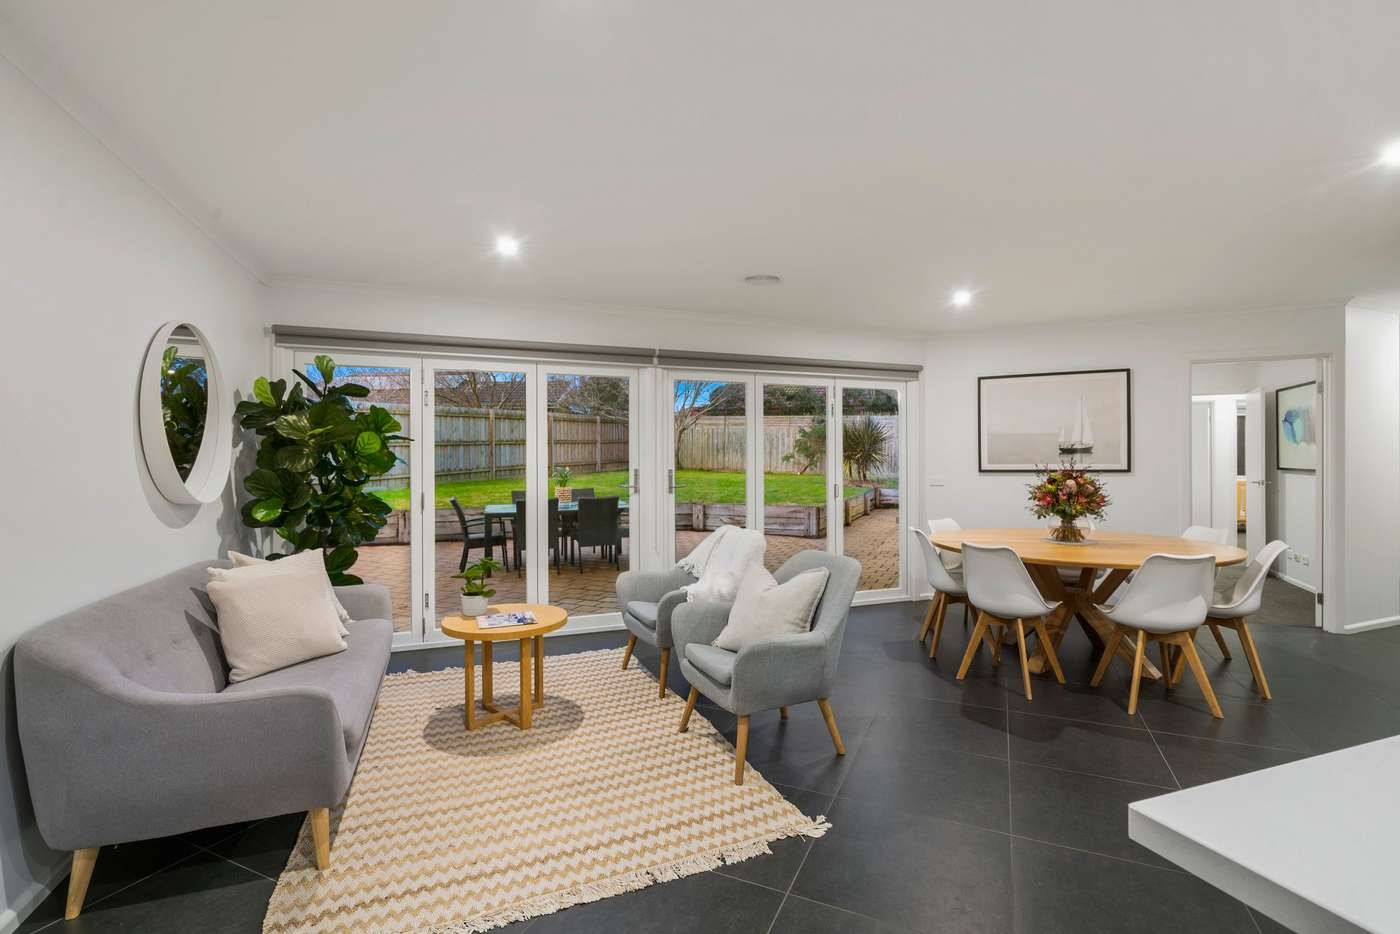 Fifth view of Homely house listing, 247 Heatherhill Road, Frankston VIC 3199